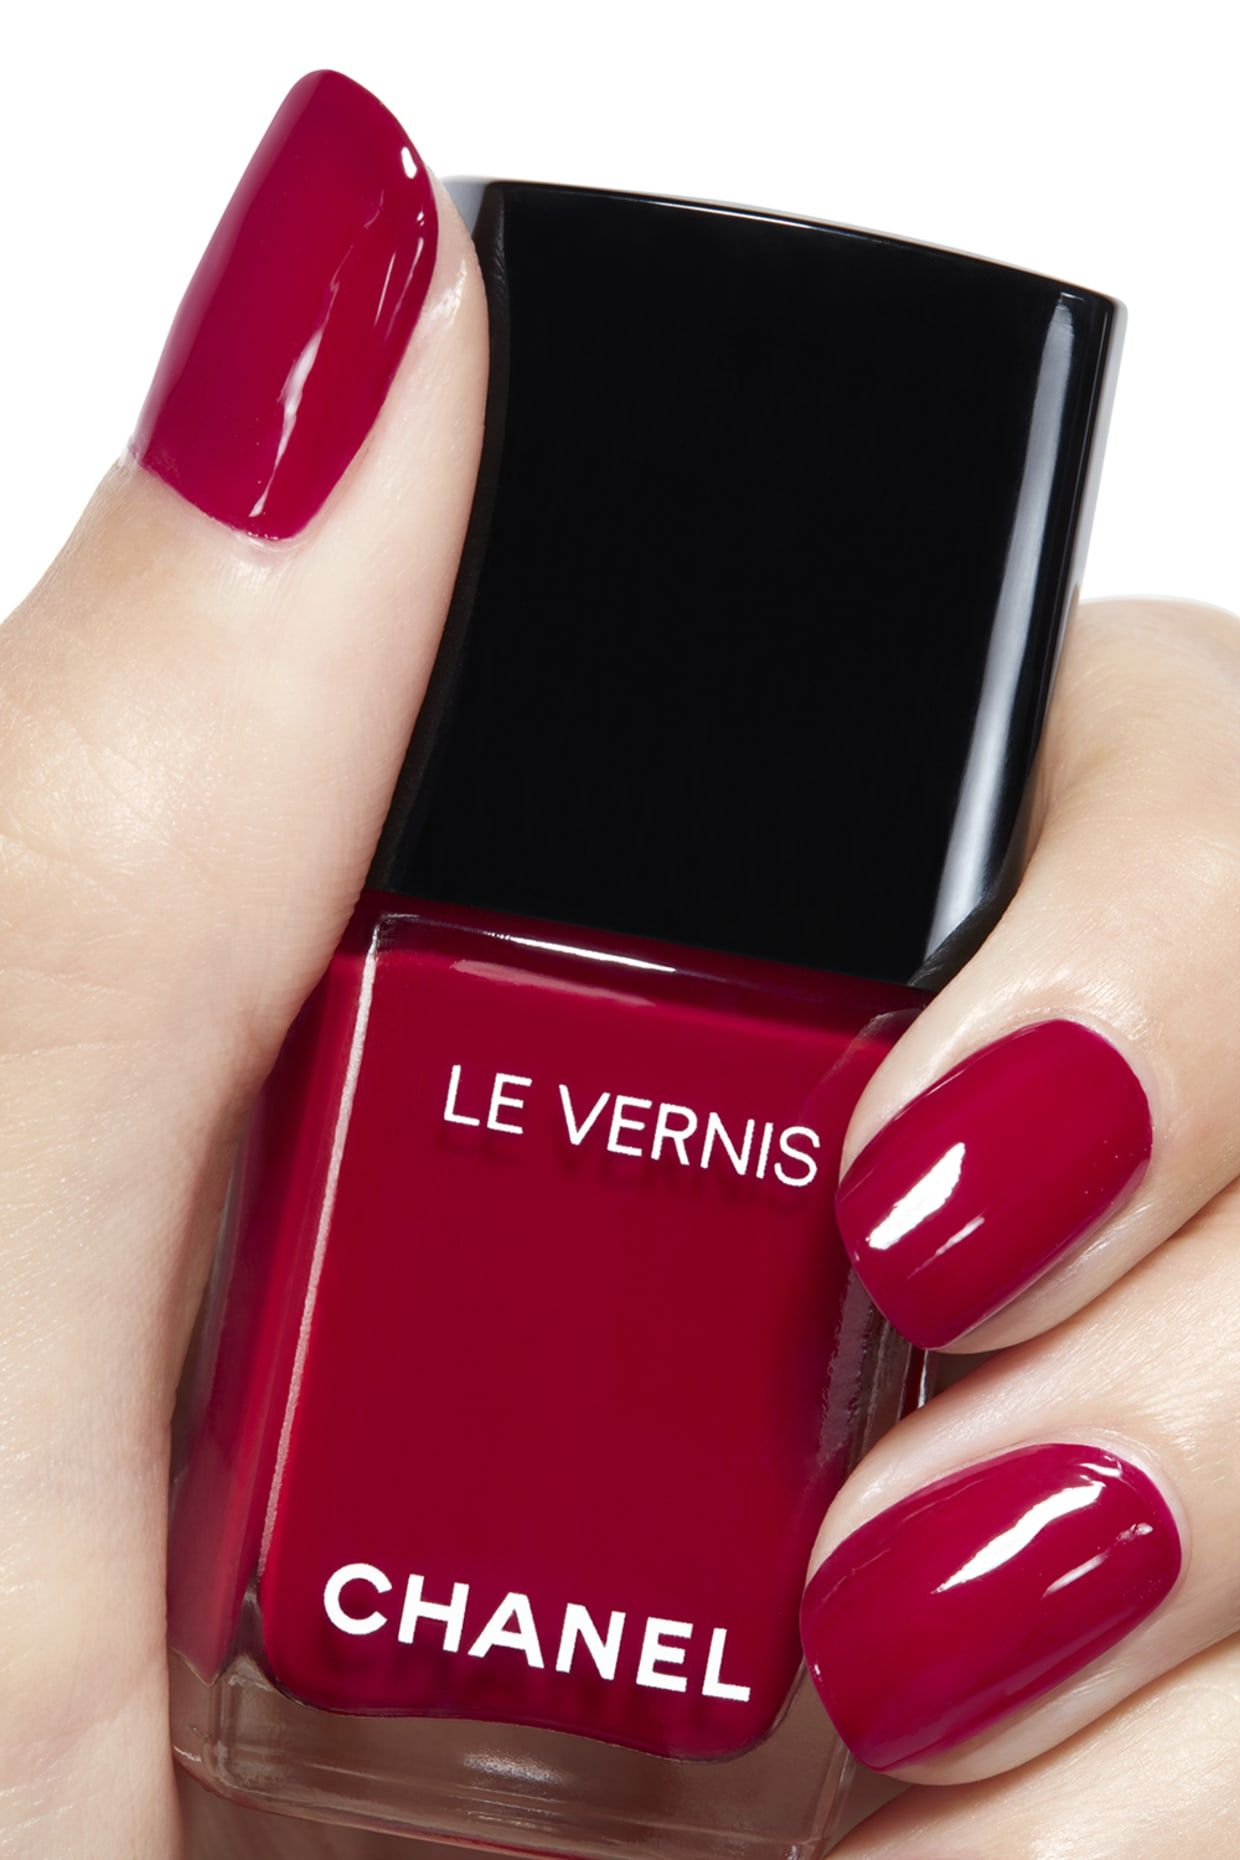 Le Vernis Longwear Nail Colour 08 Pirate With Images Nehty Liceni